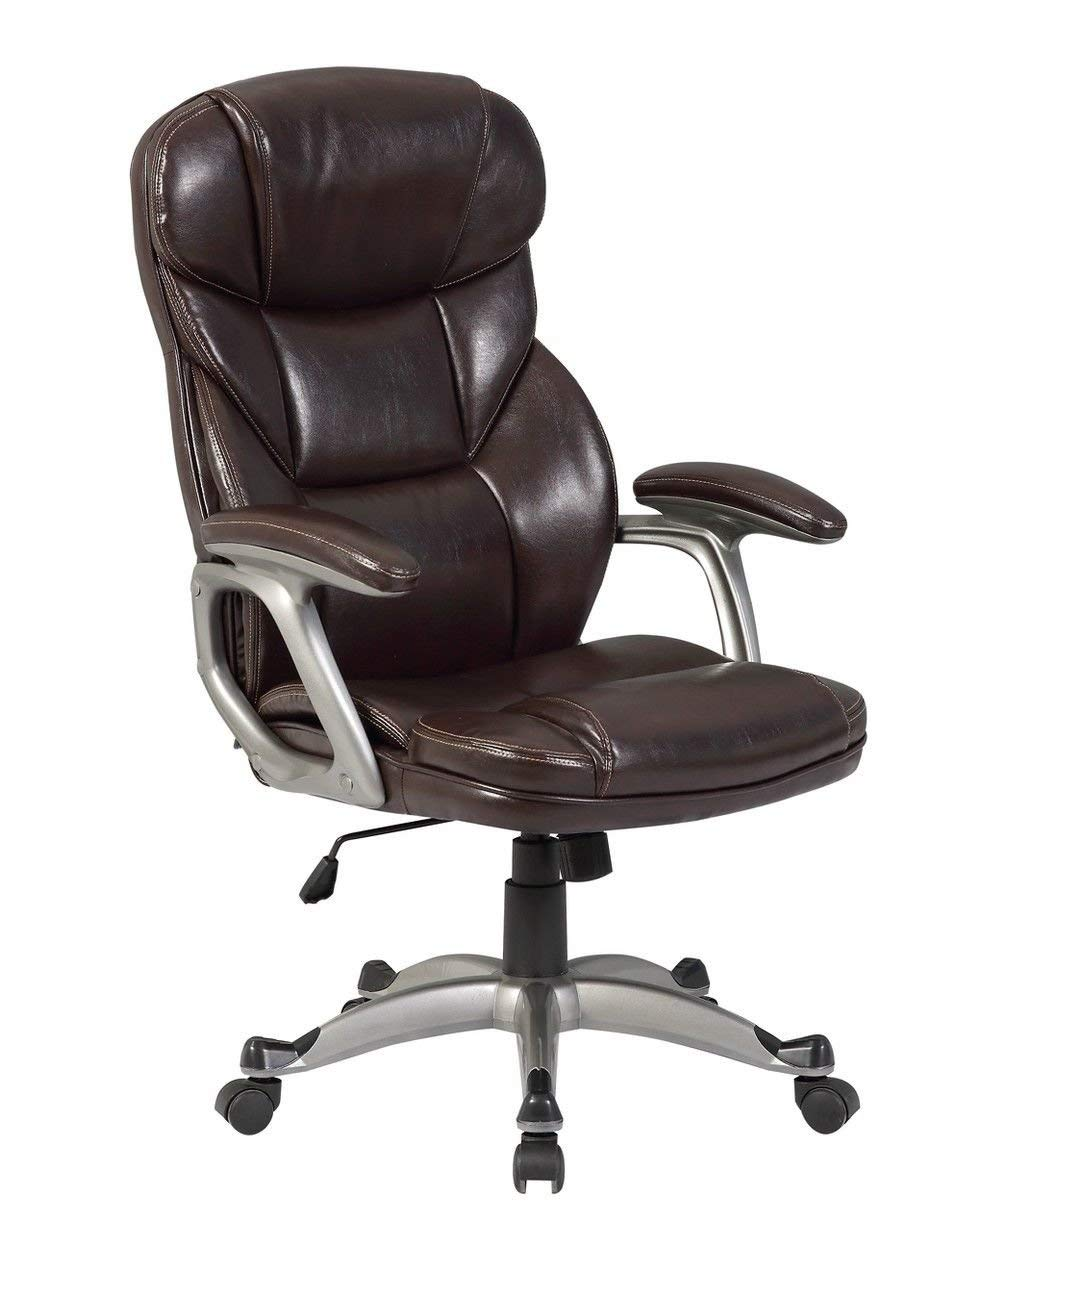 GHP Brown 330-Lbs Capacity PU Leather Swivel Ergonomic Executive Computer Desk Chair